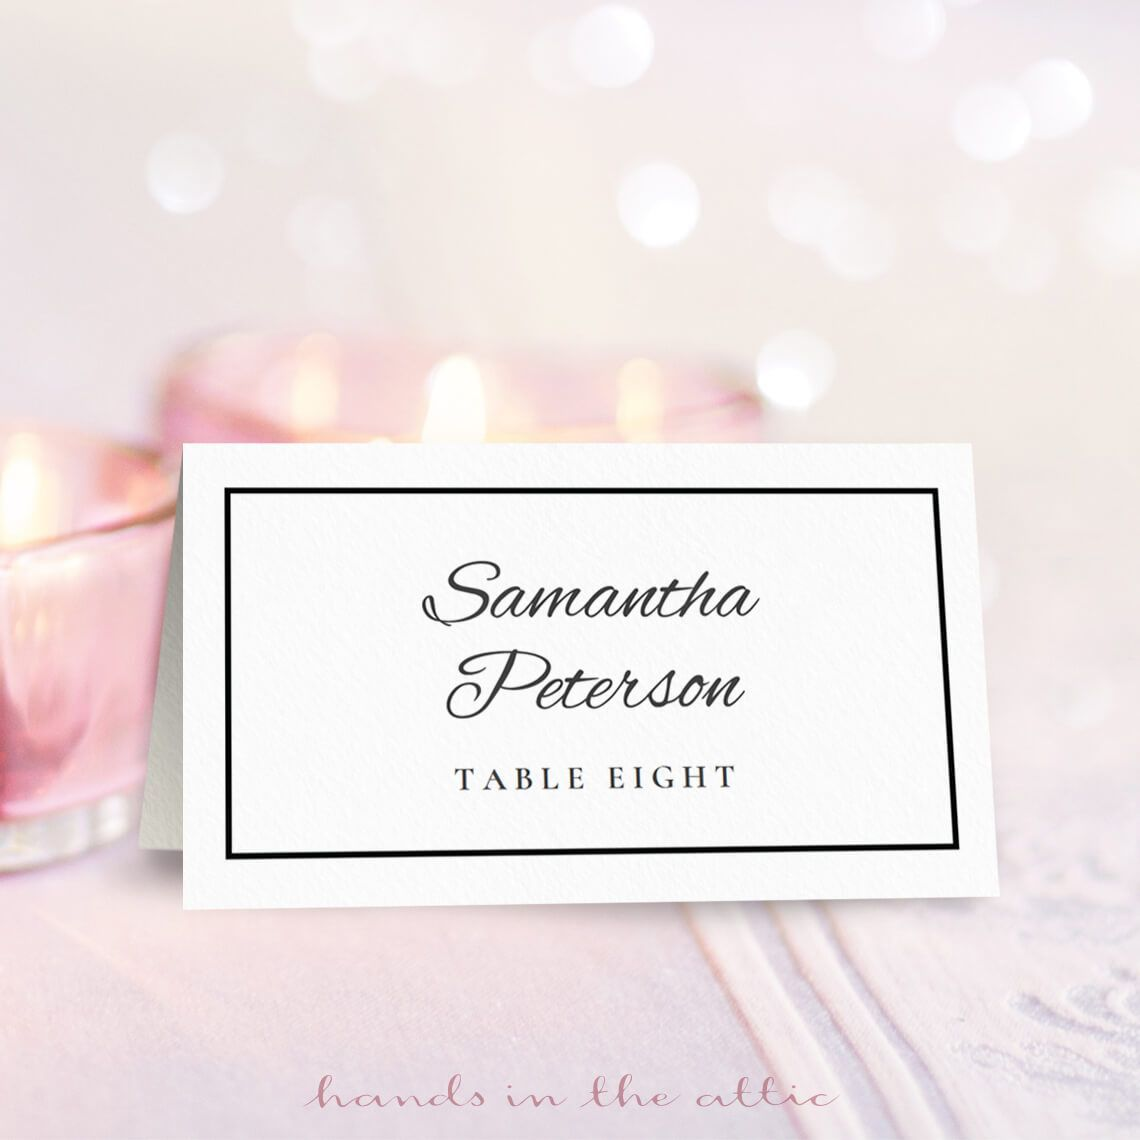 Wedding Place Card Template Free On Handsintheattic Inside Table Place Card Template Free Place Card Template Card Templates Printable Printable Place Cards